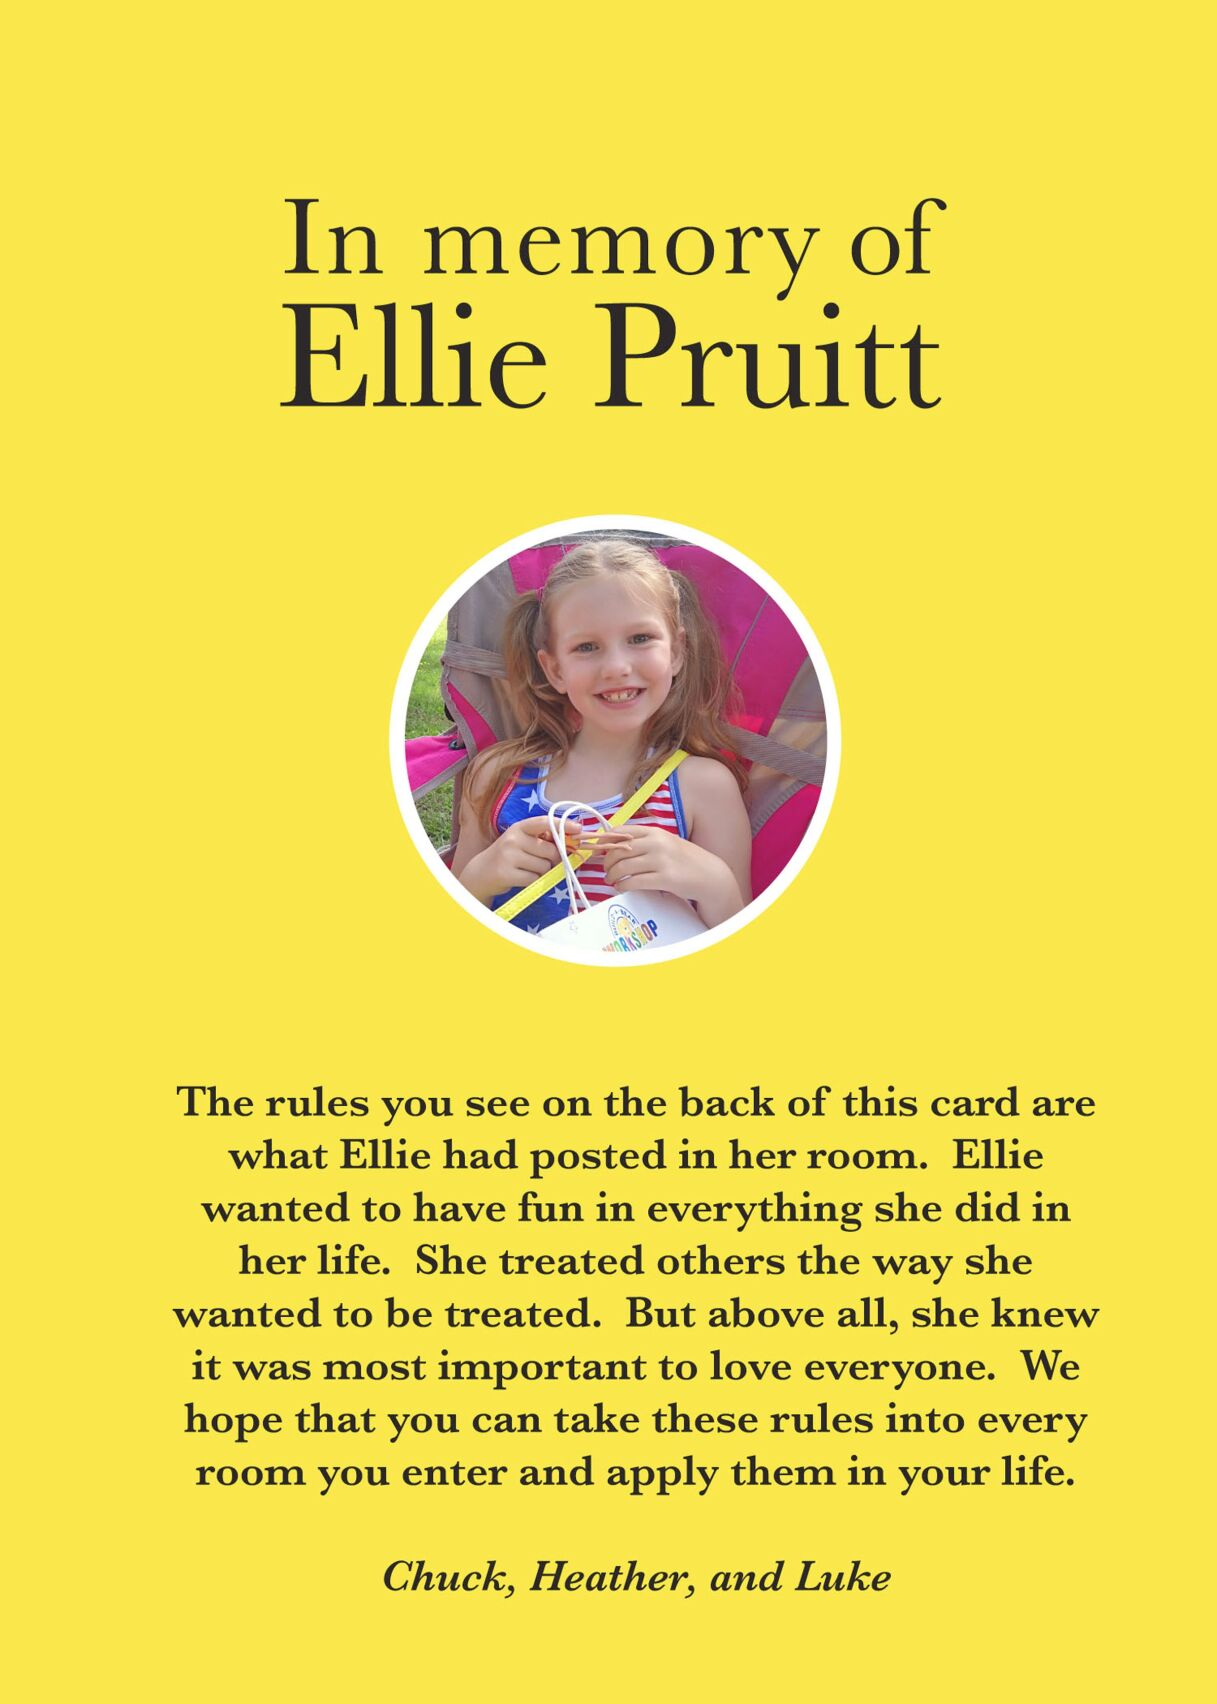 022421_MNS_Connect_Kindness_001 Ellie Pruitt tribute